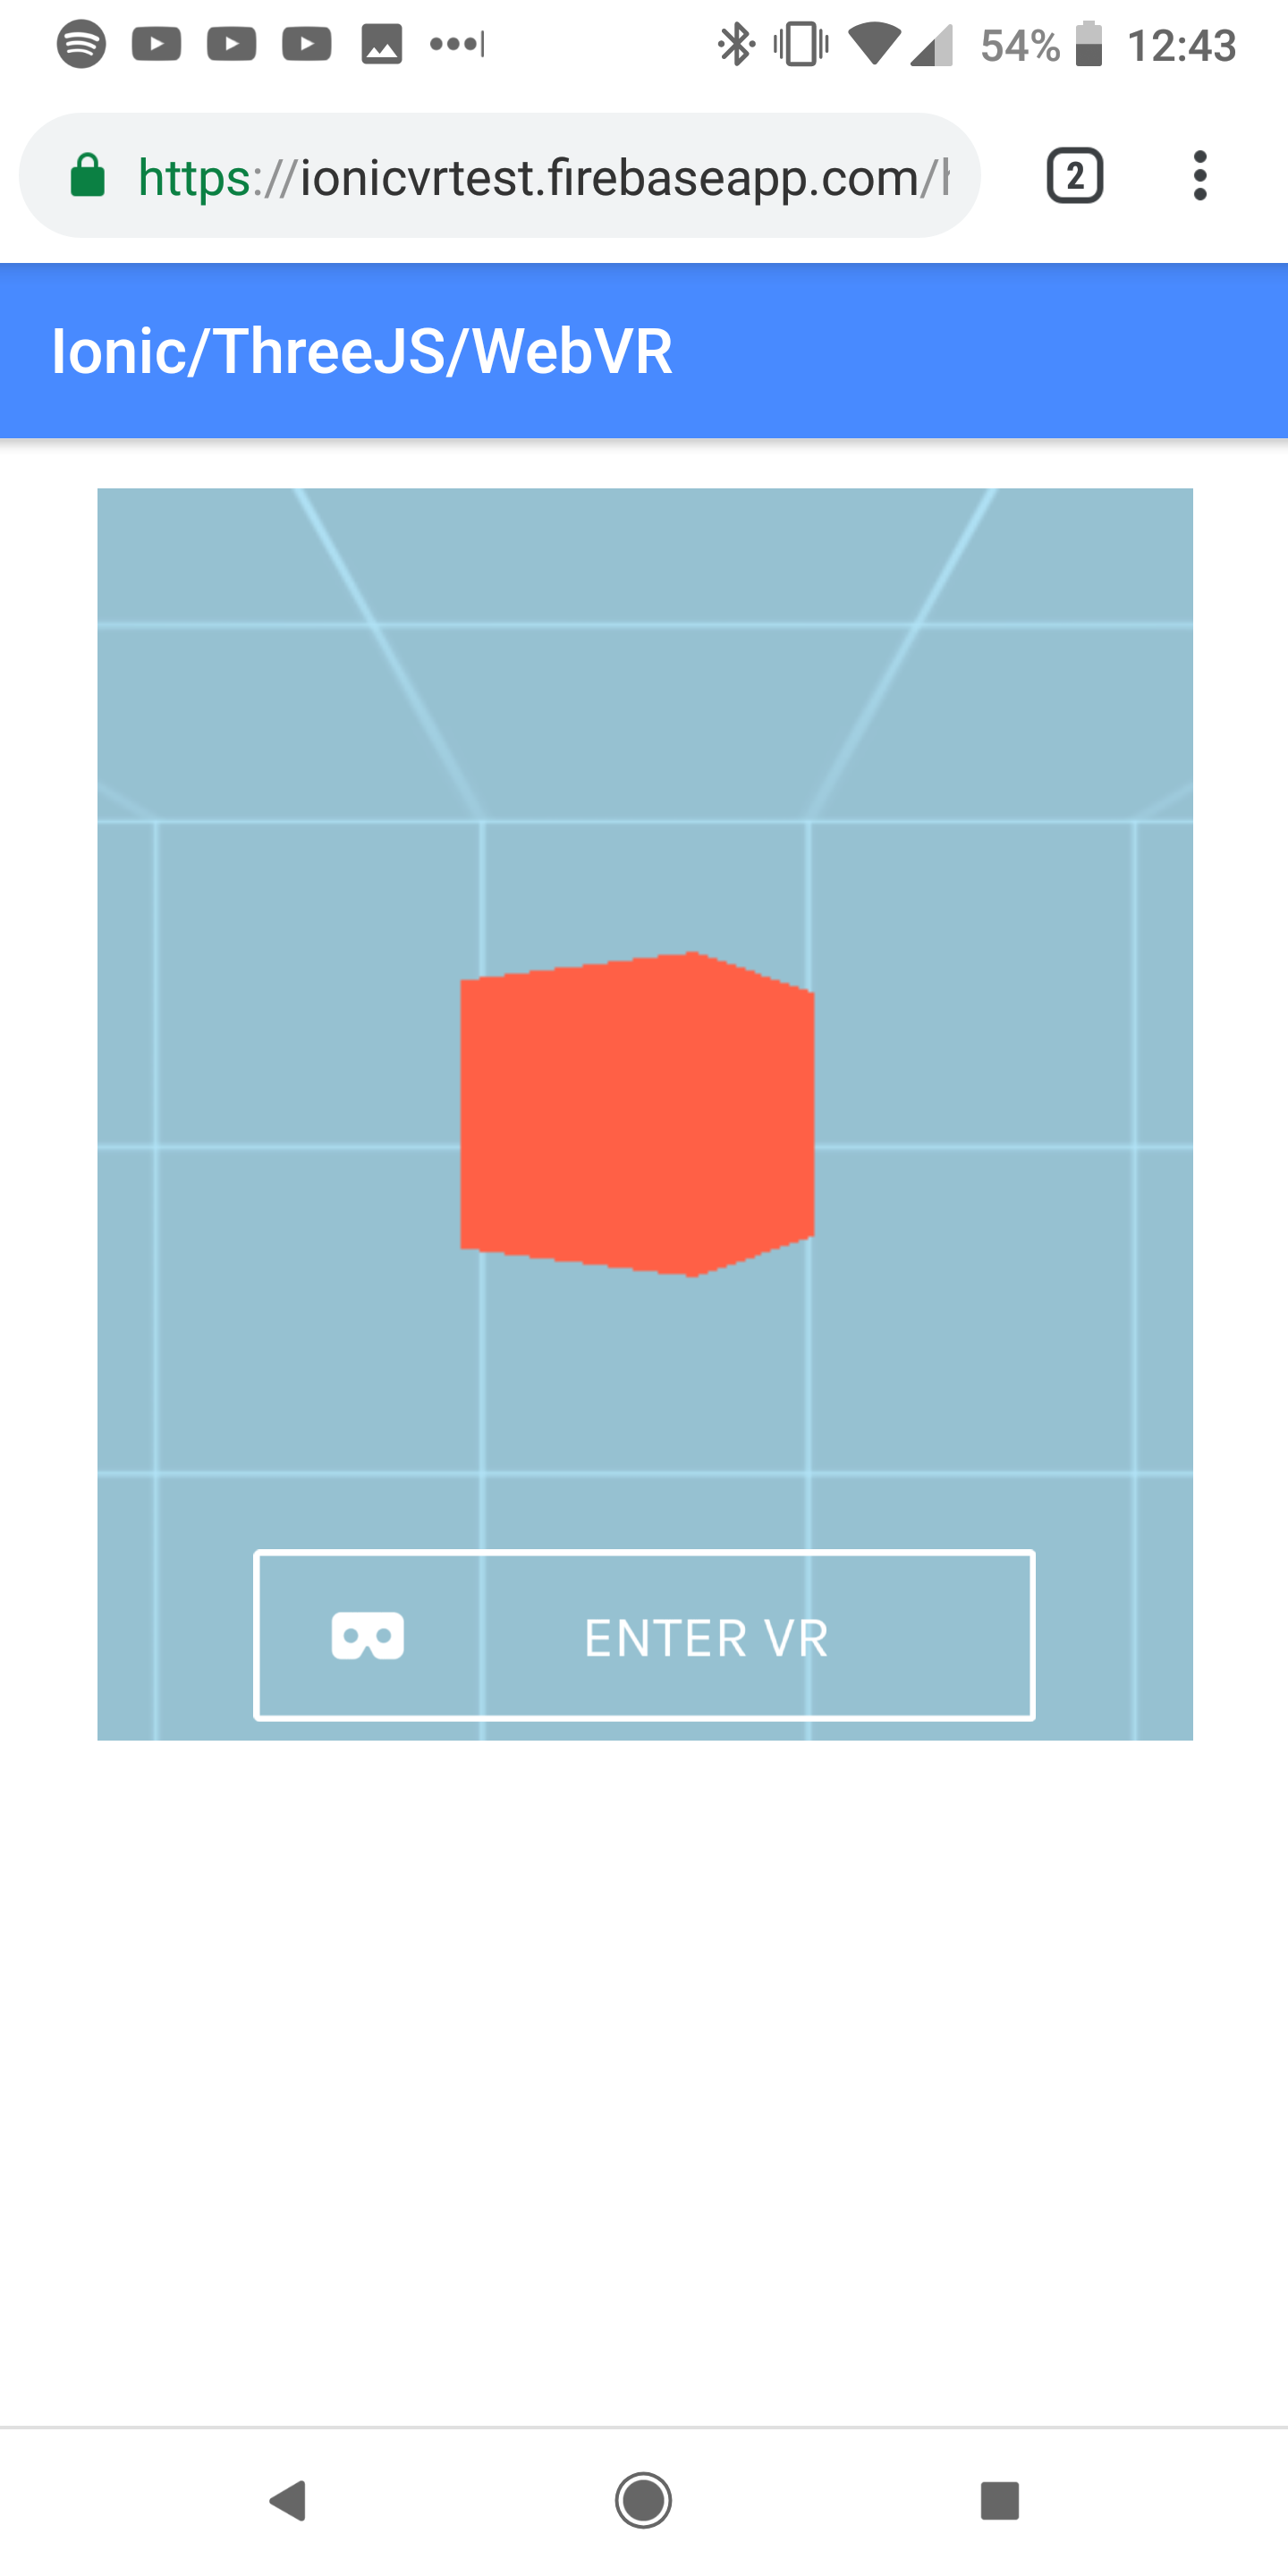 Creating a WebVR Experience in an Ionic/Angular Application